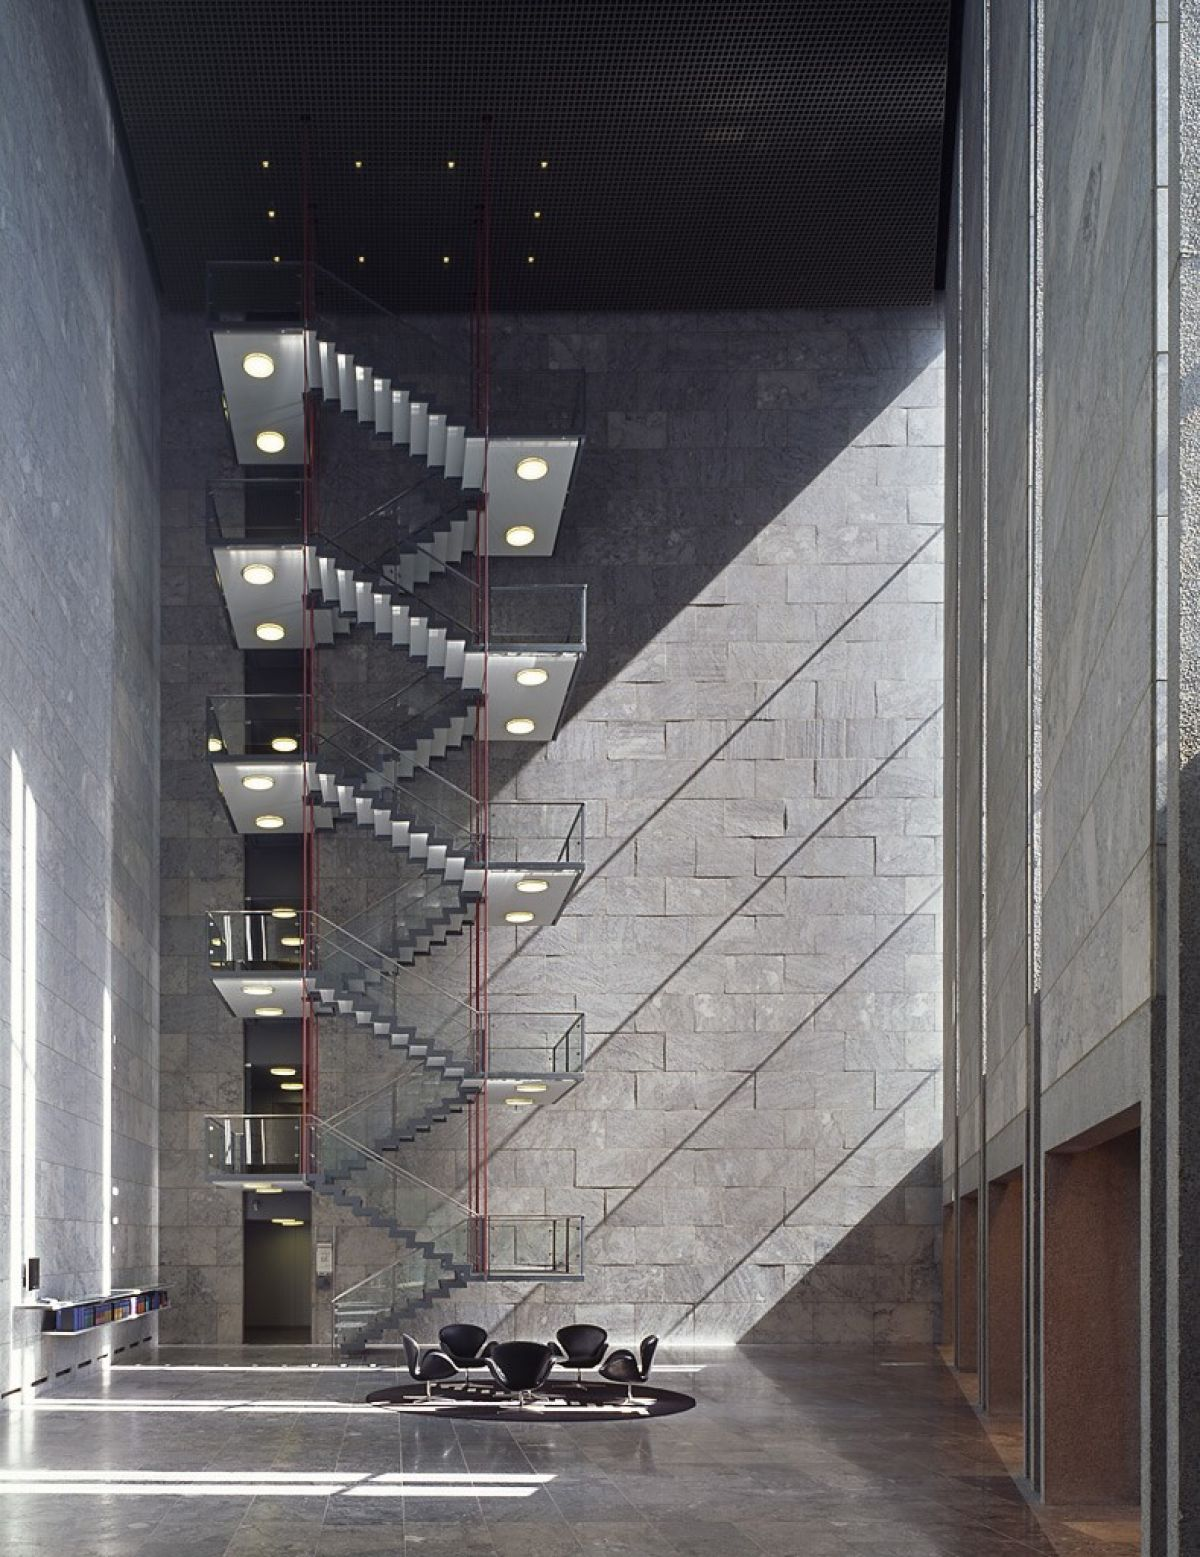 Staircase architecture  The beauty of stairs. The Ascension of the Architecture | METALOCUS